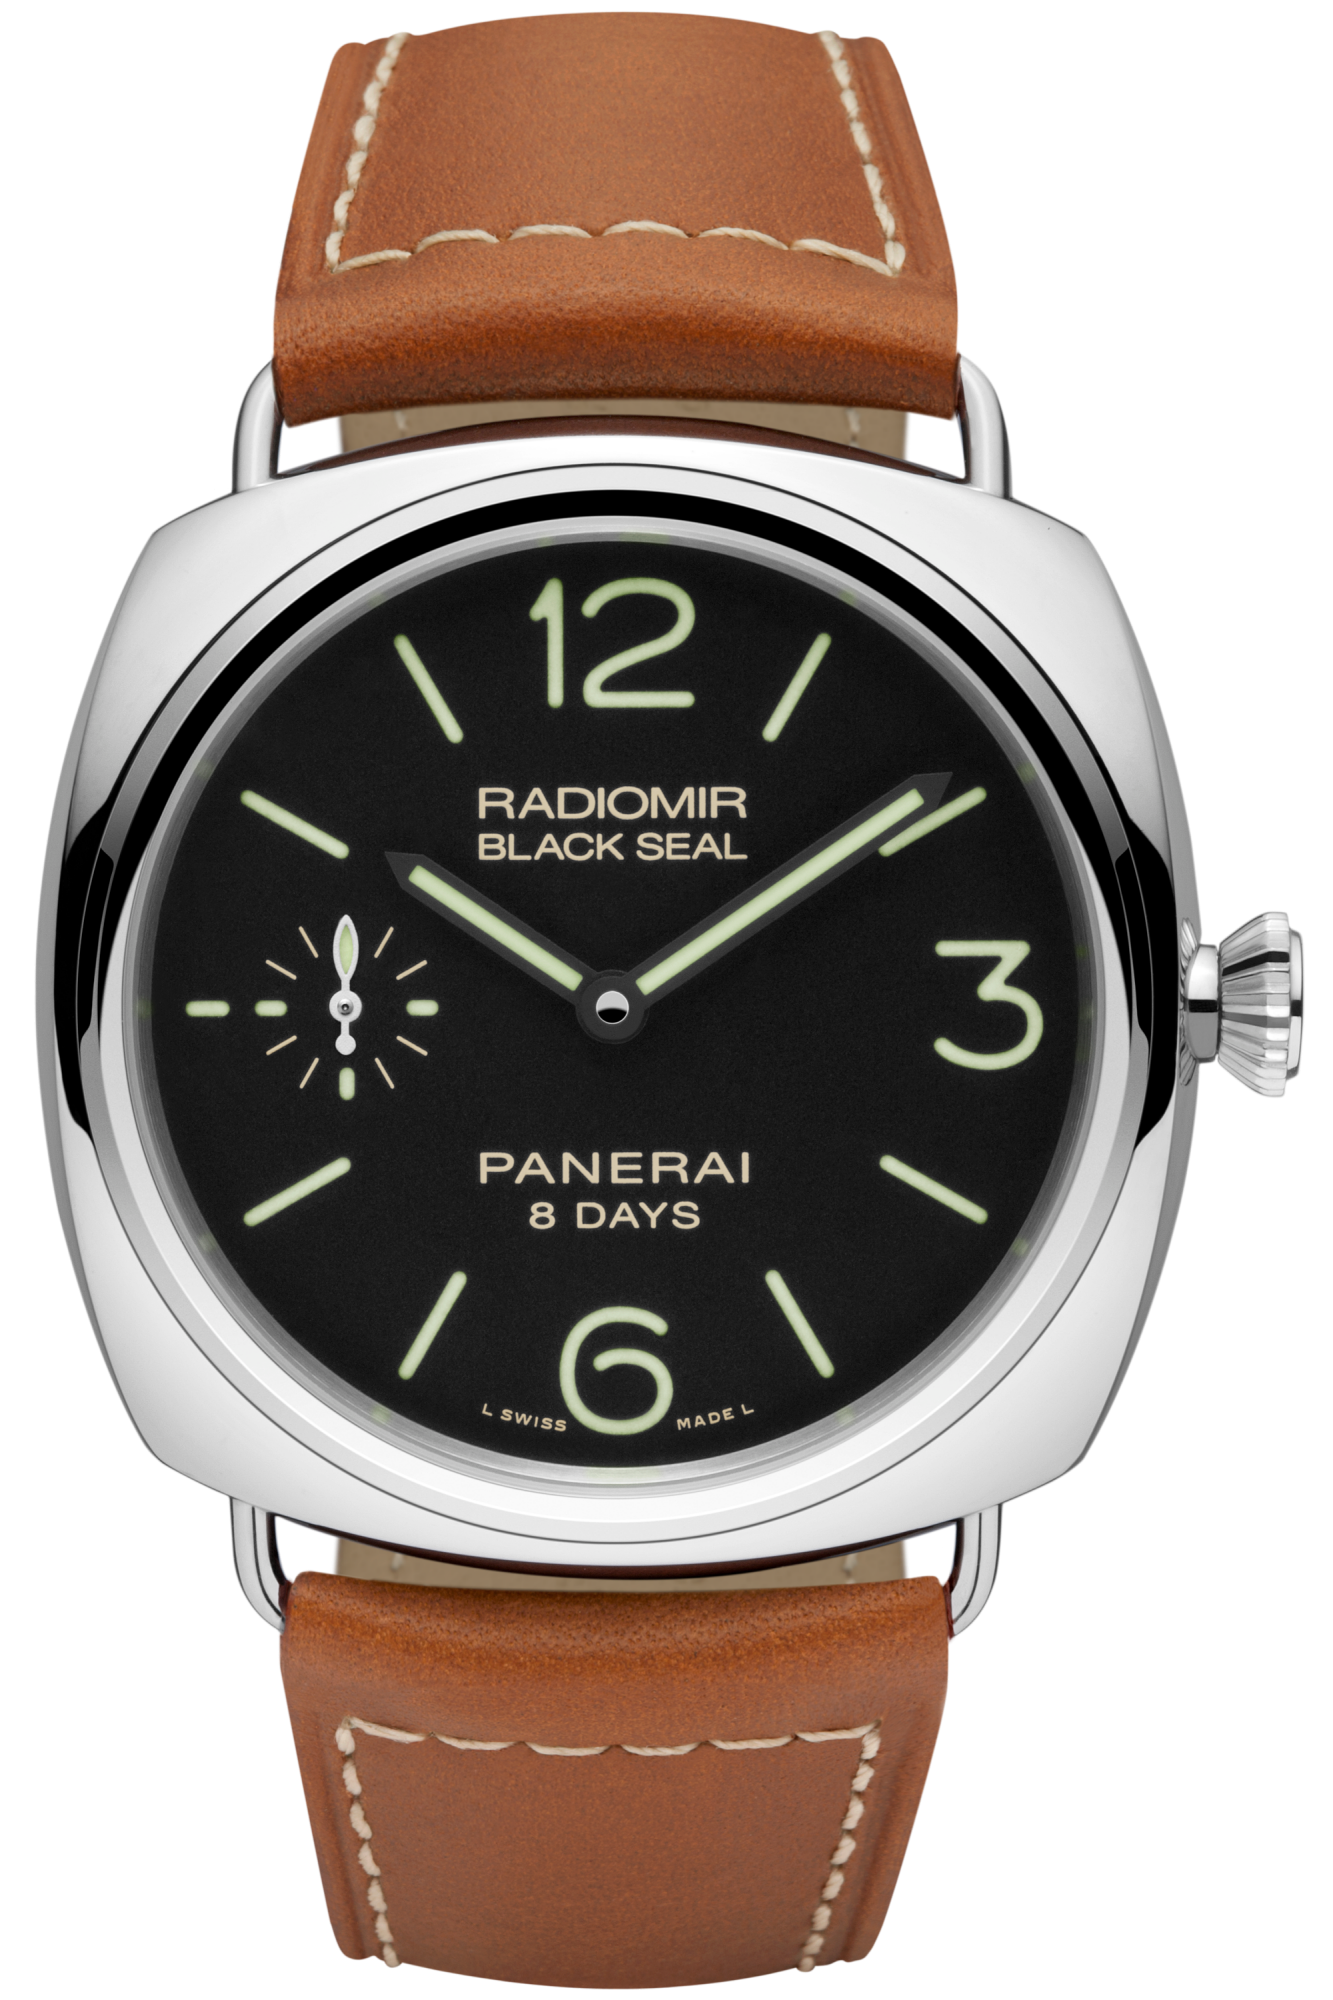 b95270f35e0c Radiomir Black Seal 8 Days Acciaio - 45mm - Panerai watch